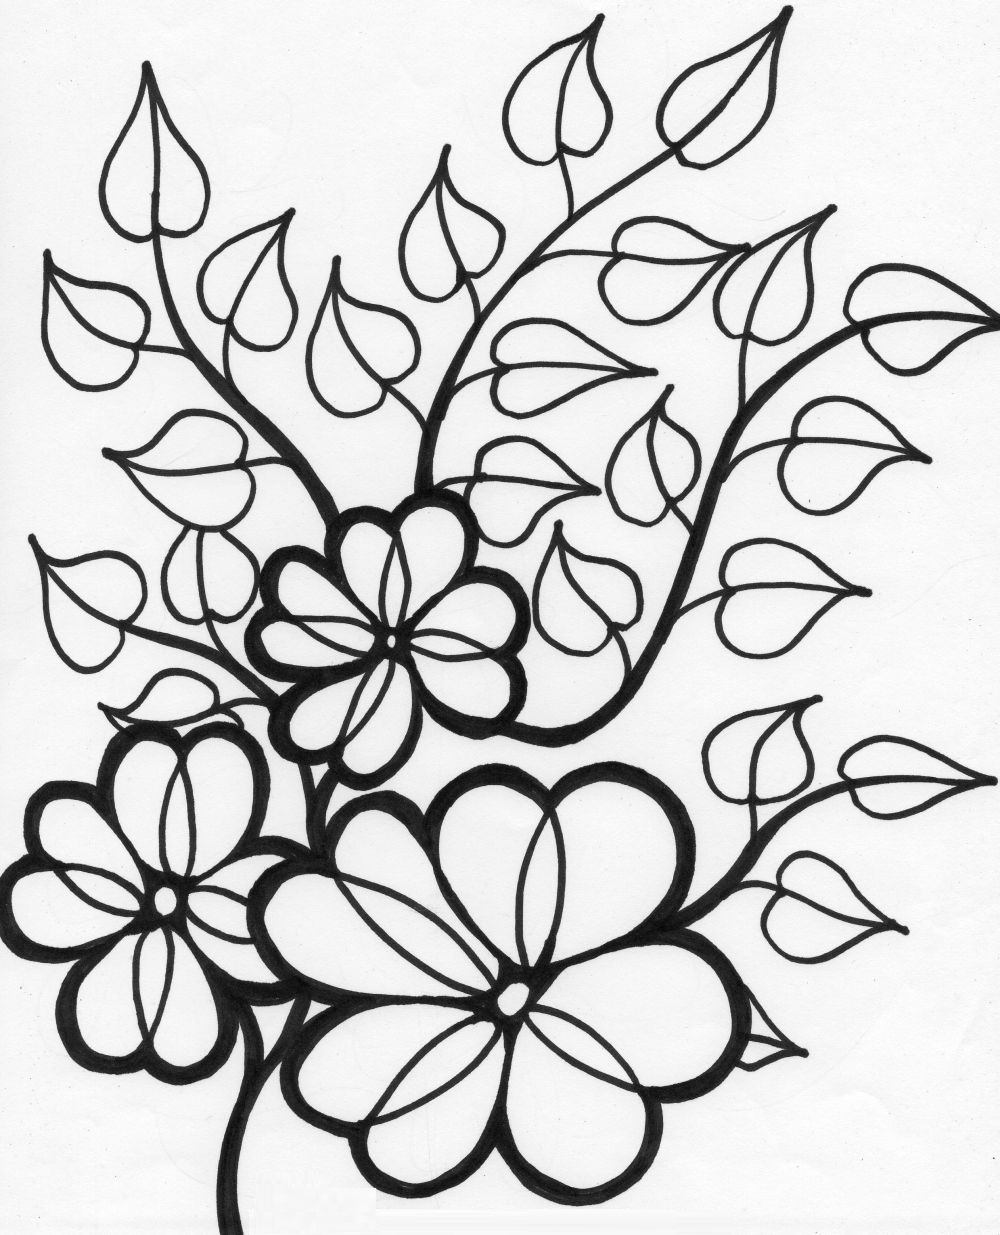 free printable flower coloring pages free printable flower coloring pages 16 pics how to printable coloring pages free flower